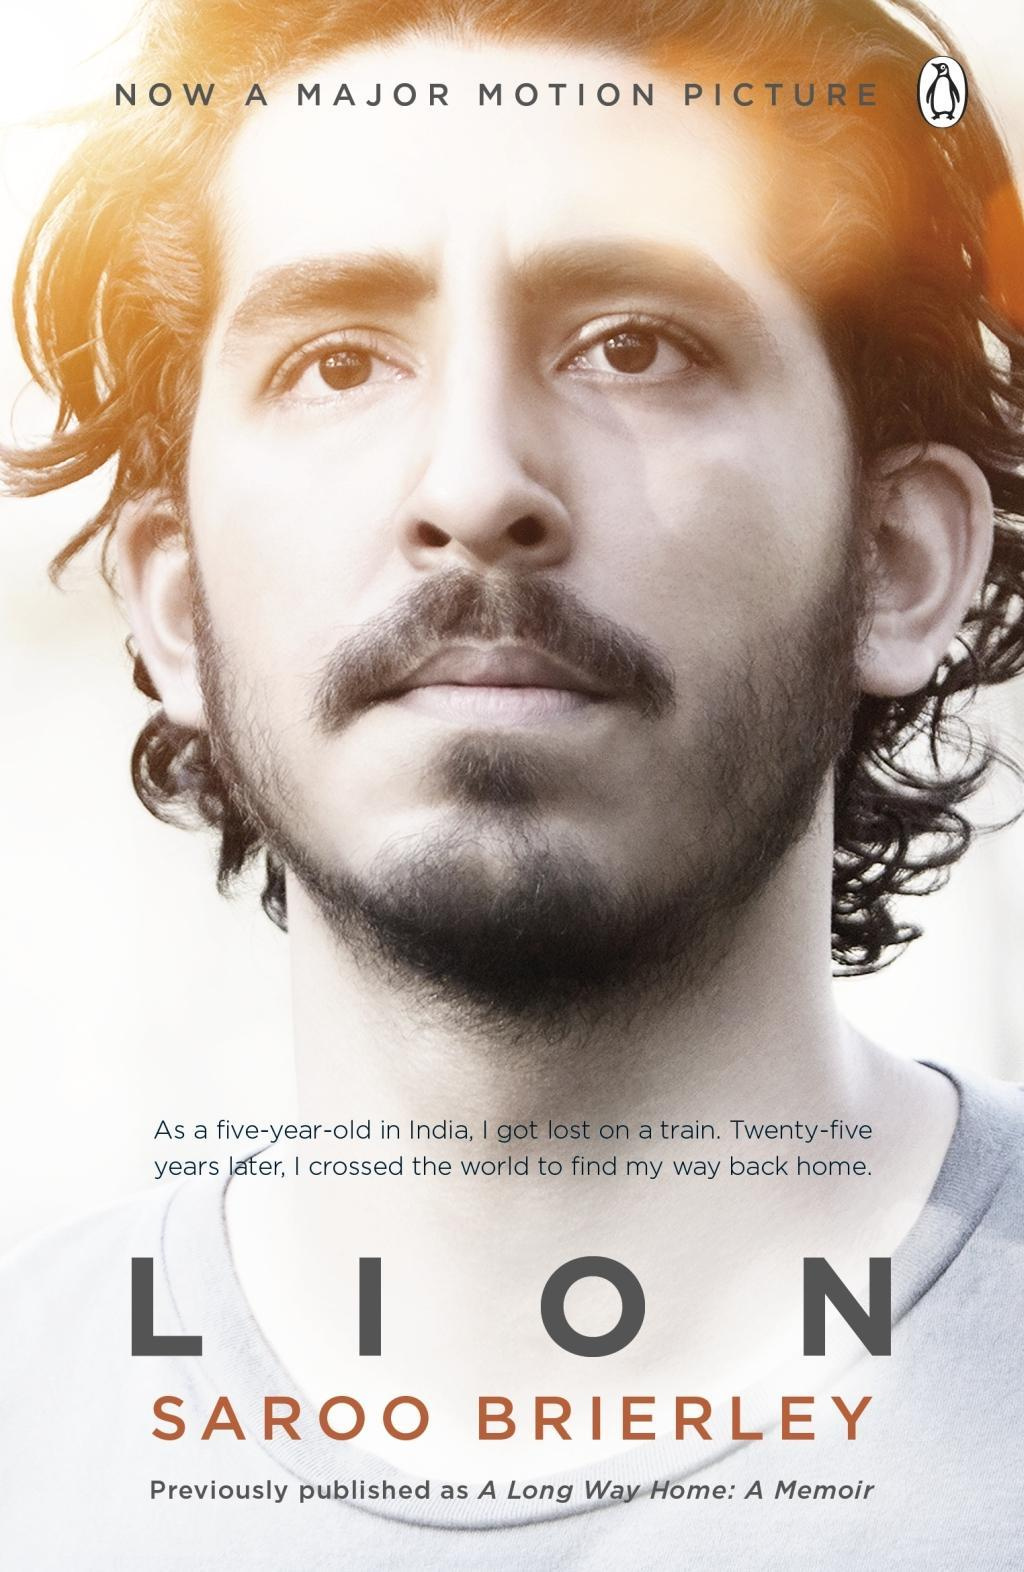 Lion: A Long Way Home by Saroo Brierley, ISBN: 9781405930994